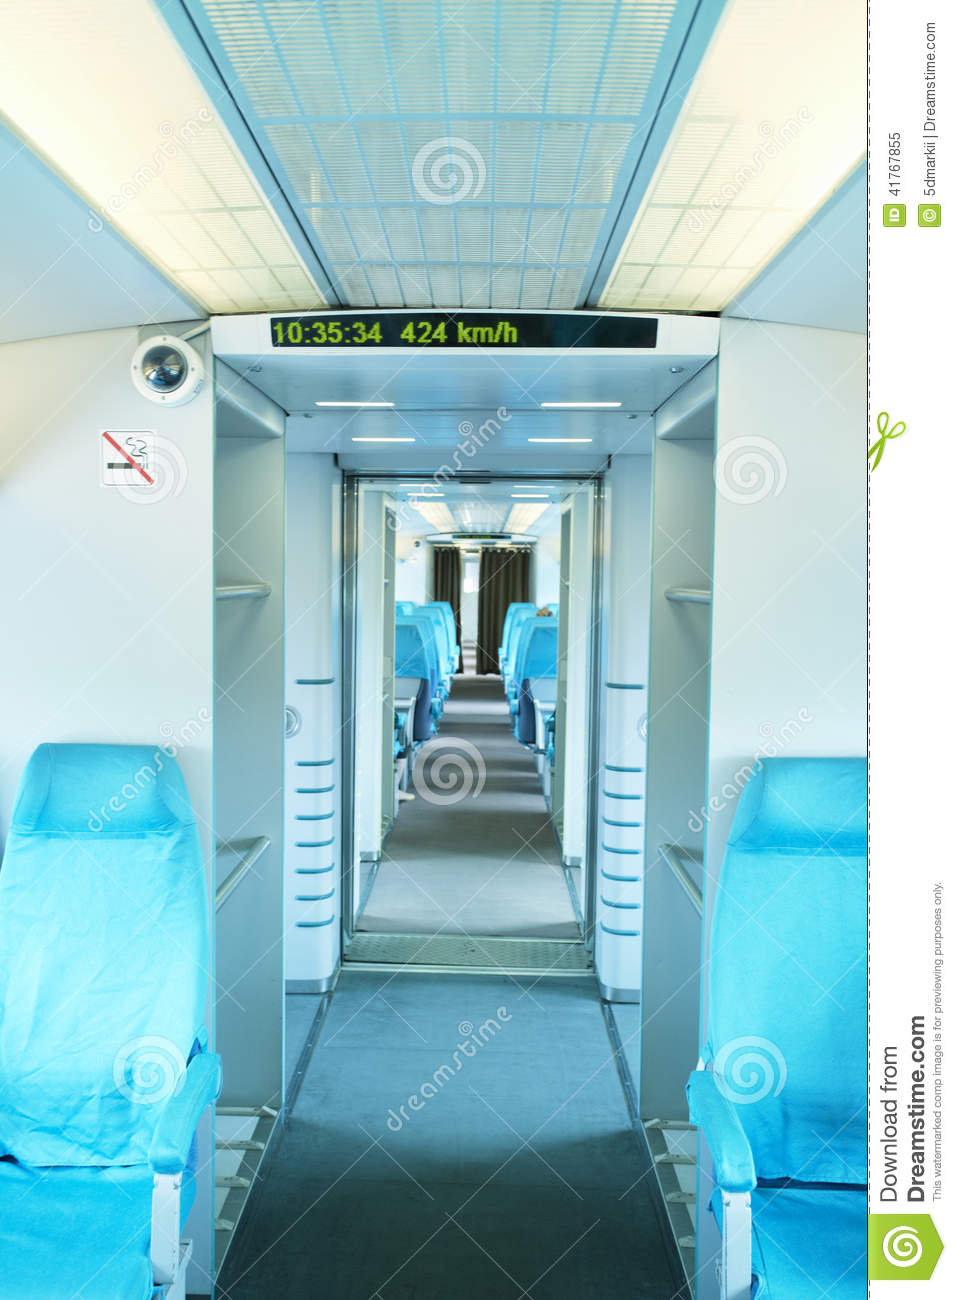 vue d 39 int rieur de train de maglev photo stock image. Black Bedroom Furniture Sets. Home Design Ideas